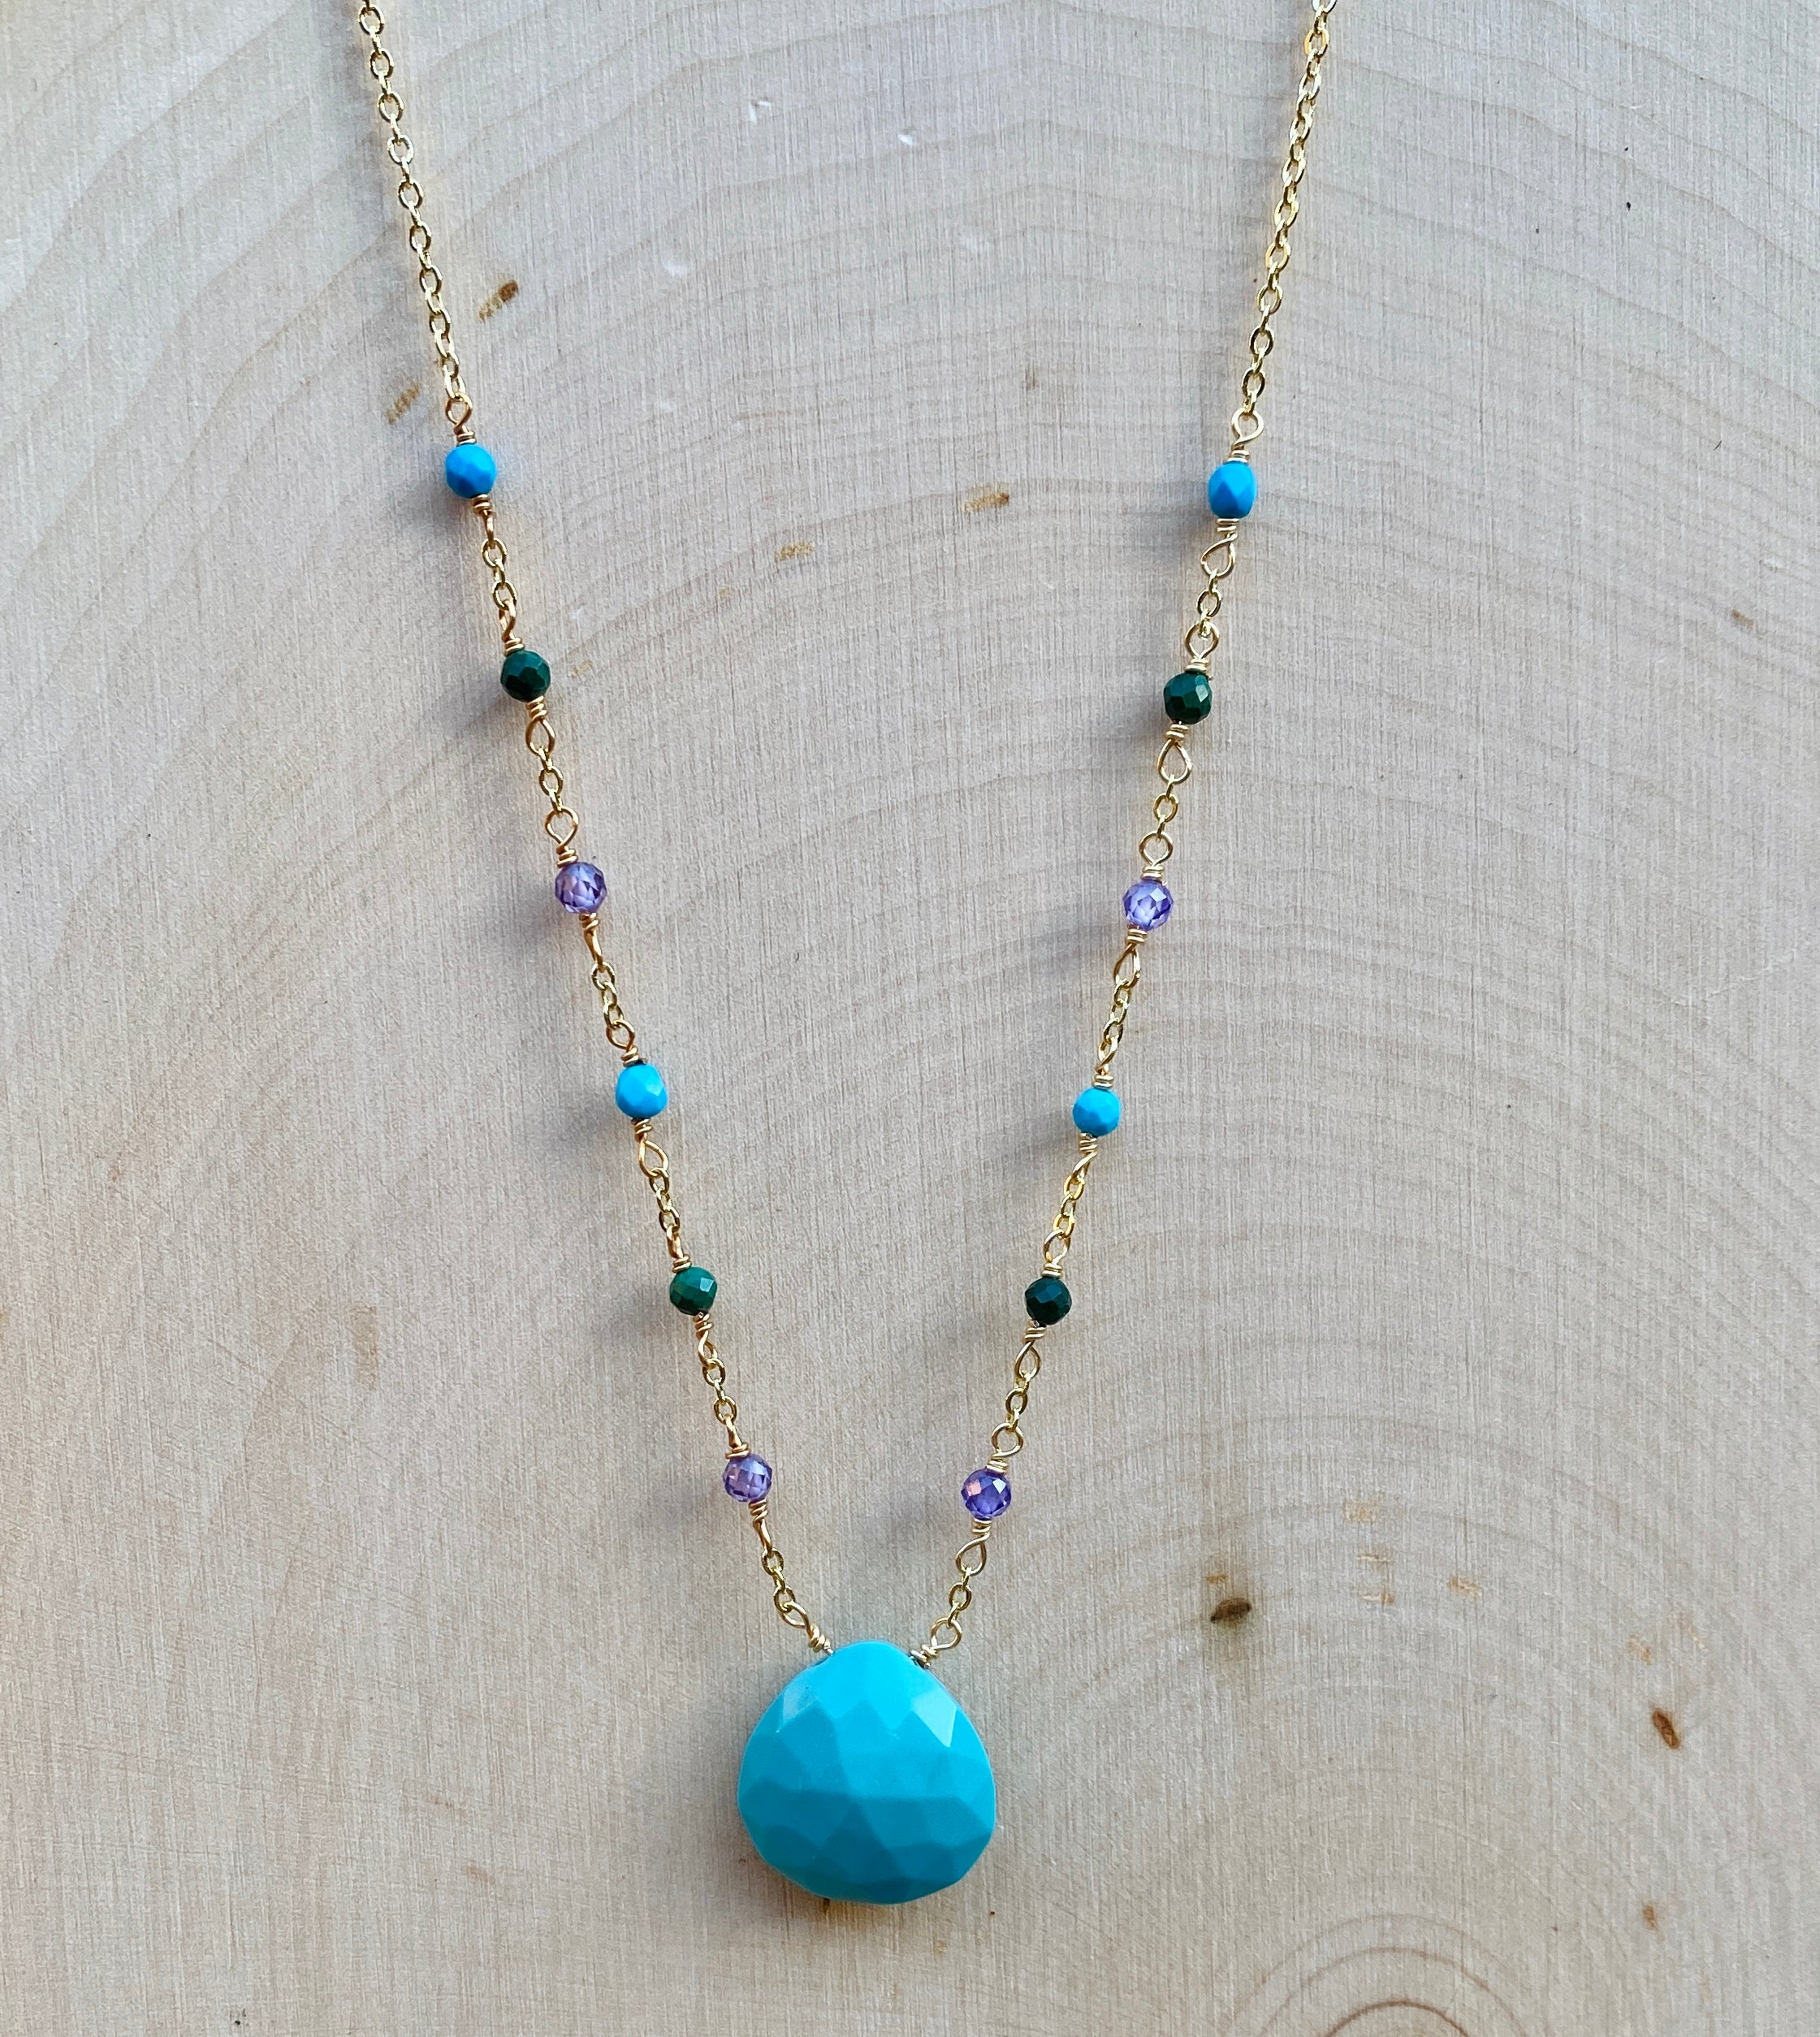 The Creativity Enhancing Necklace